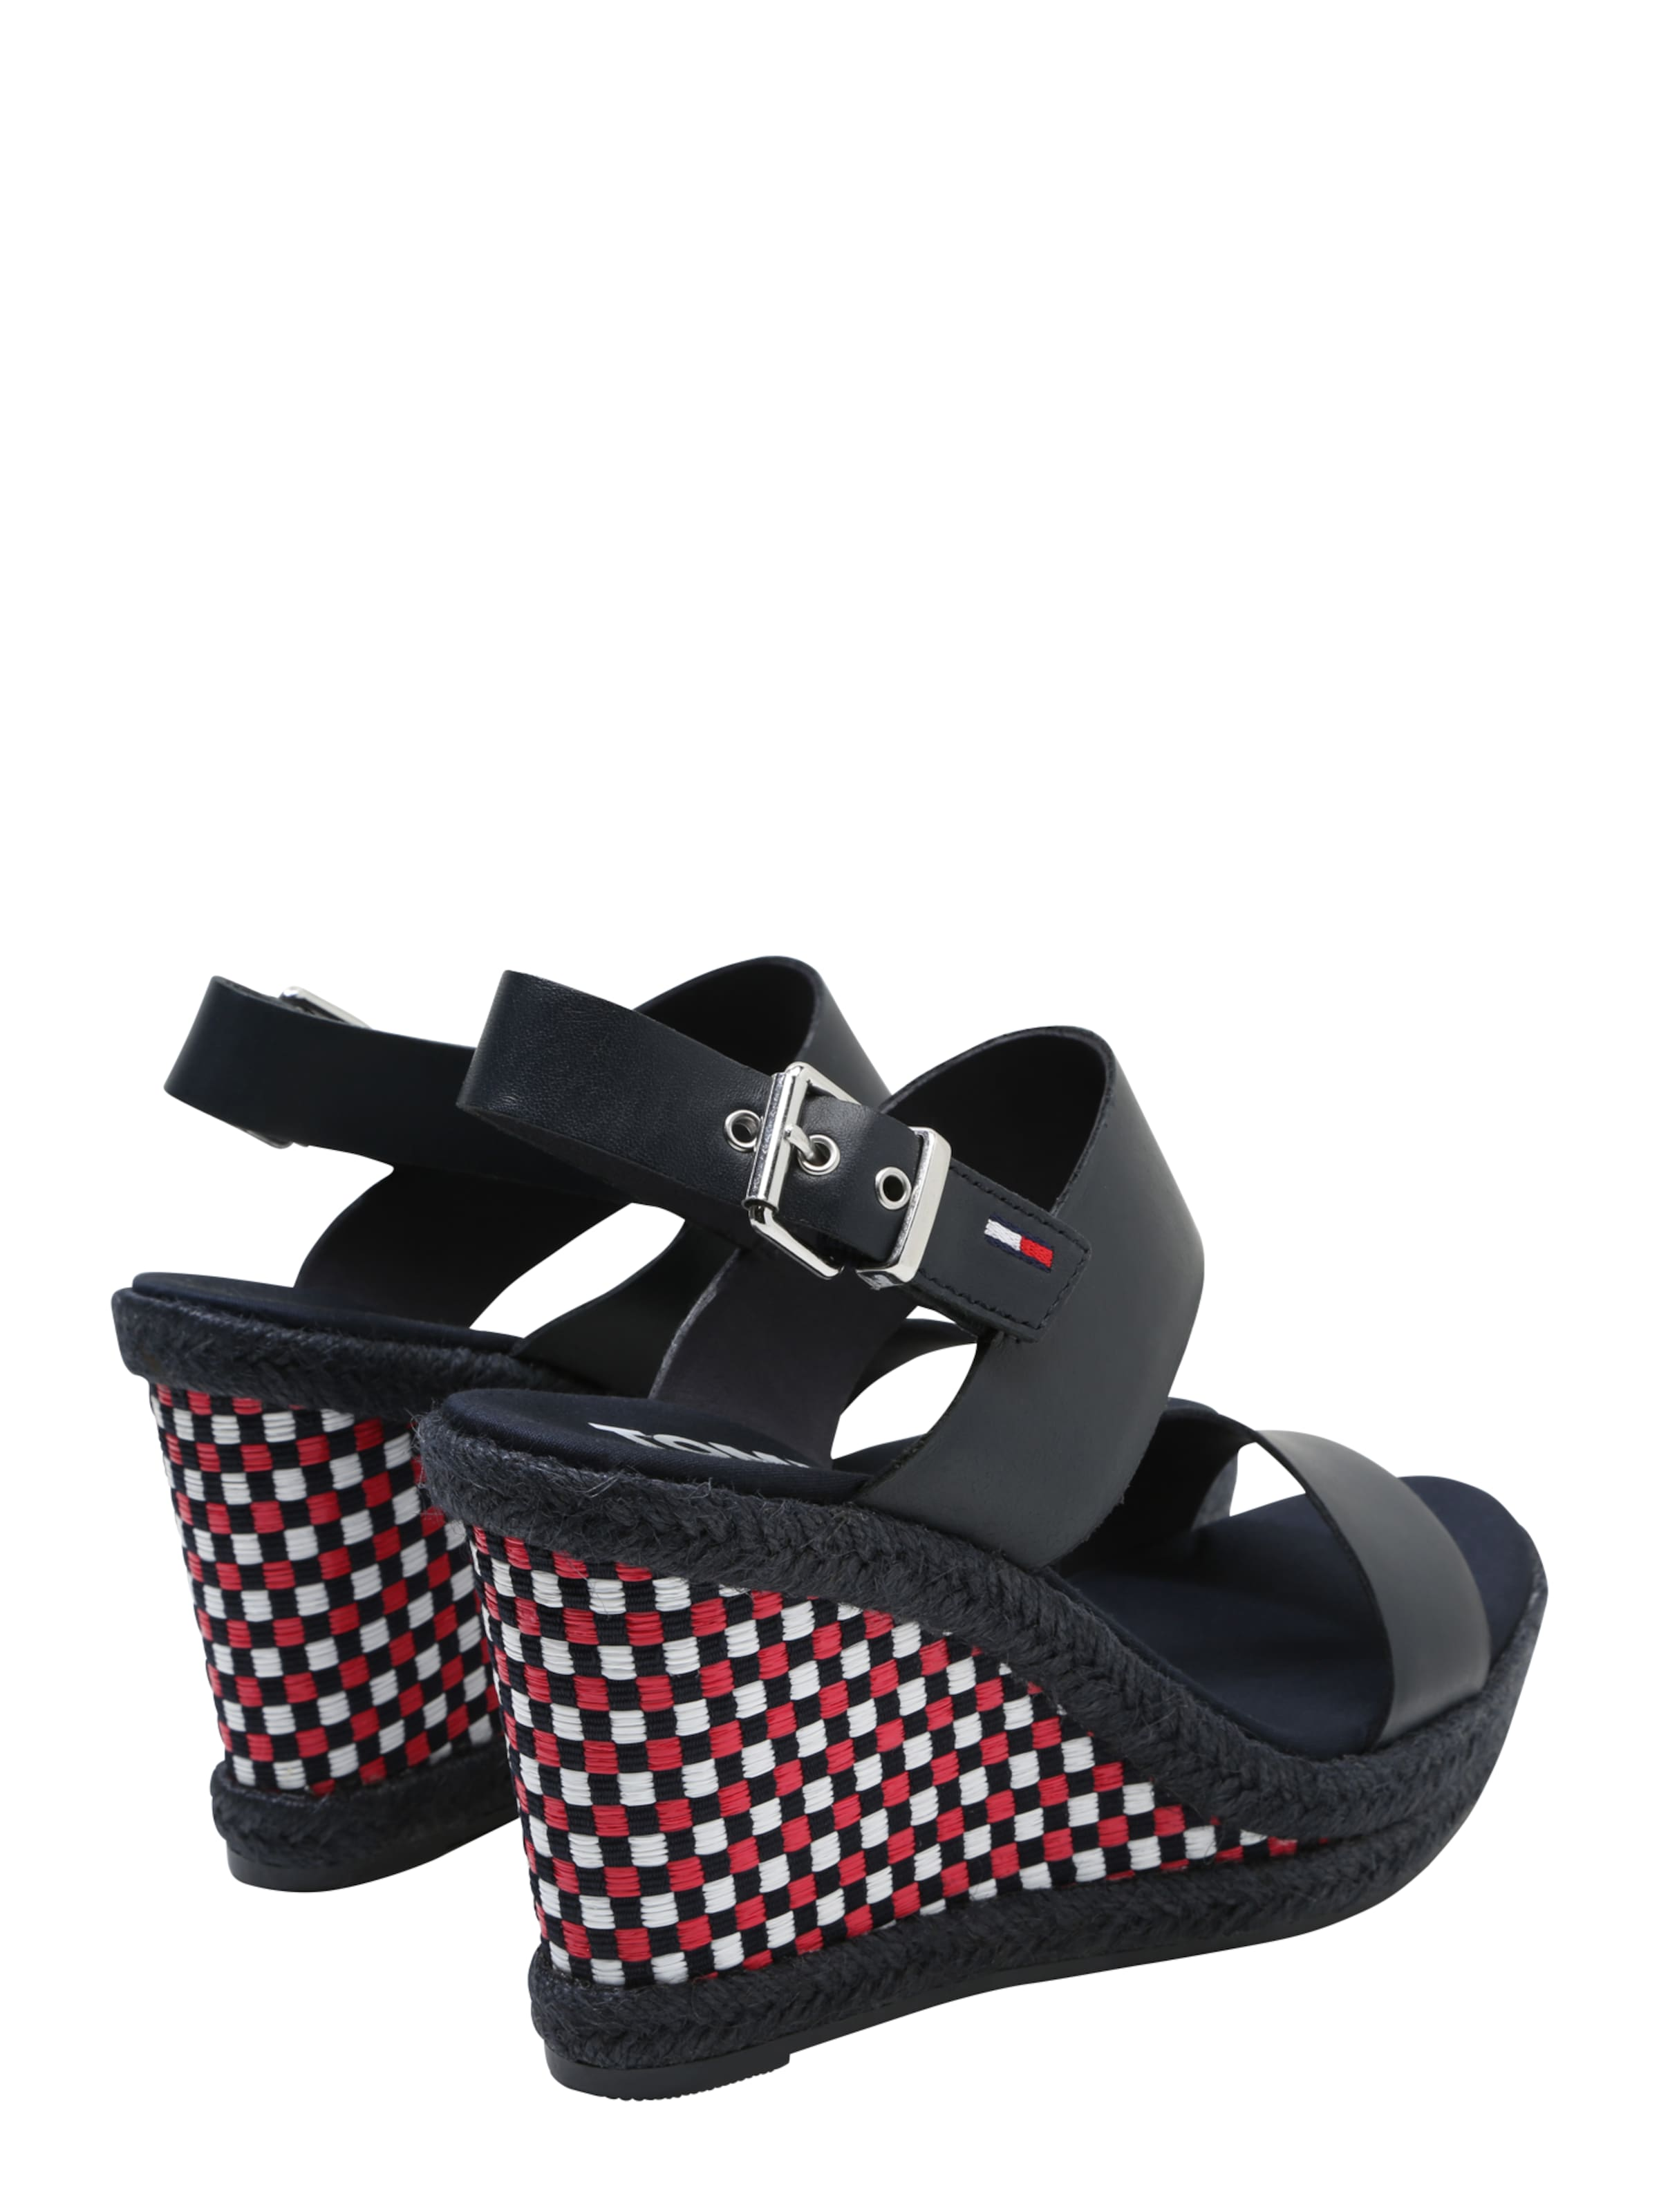 Tommy Jeans Keilsandale 'GINGHAM PATTERN' Beste Angebote iBh6PtYb